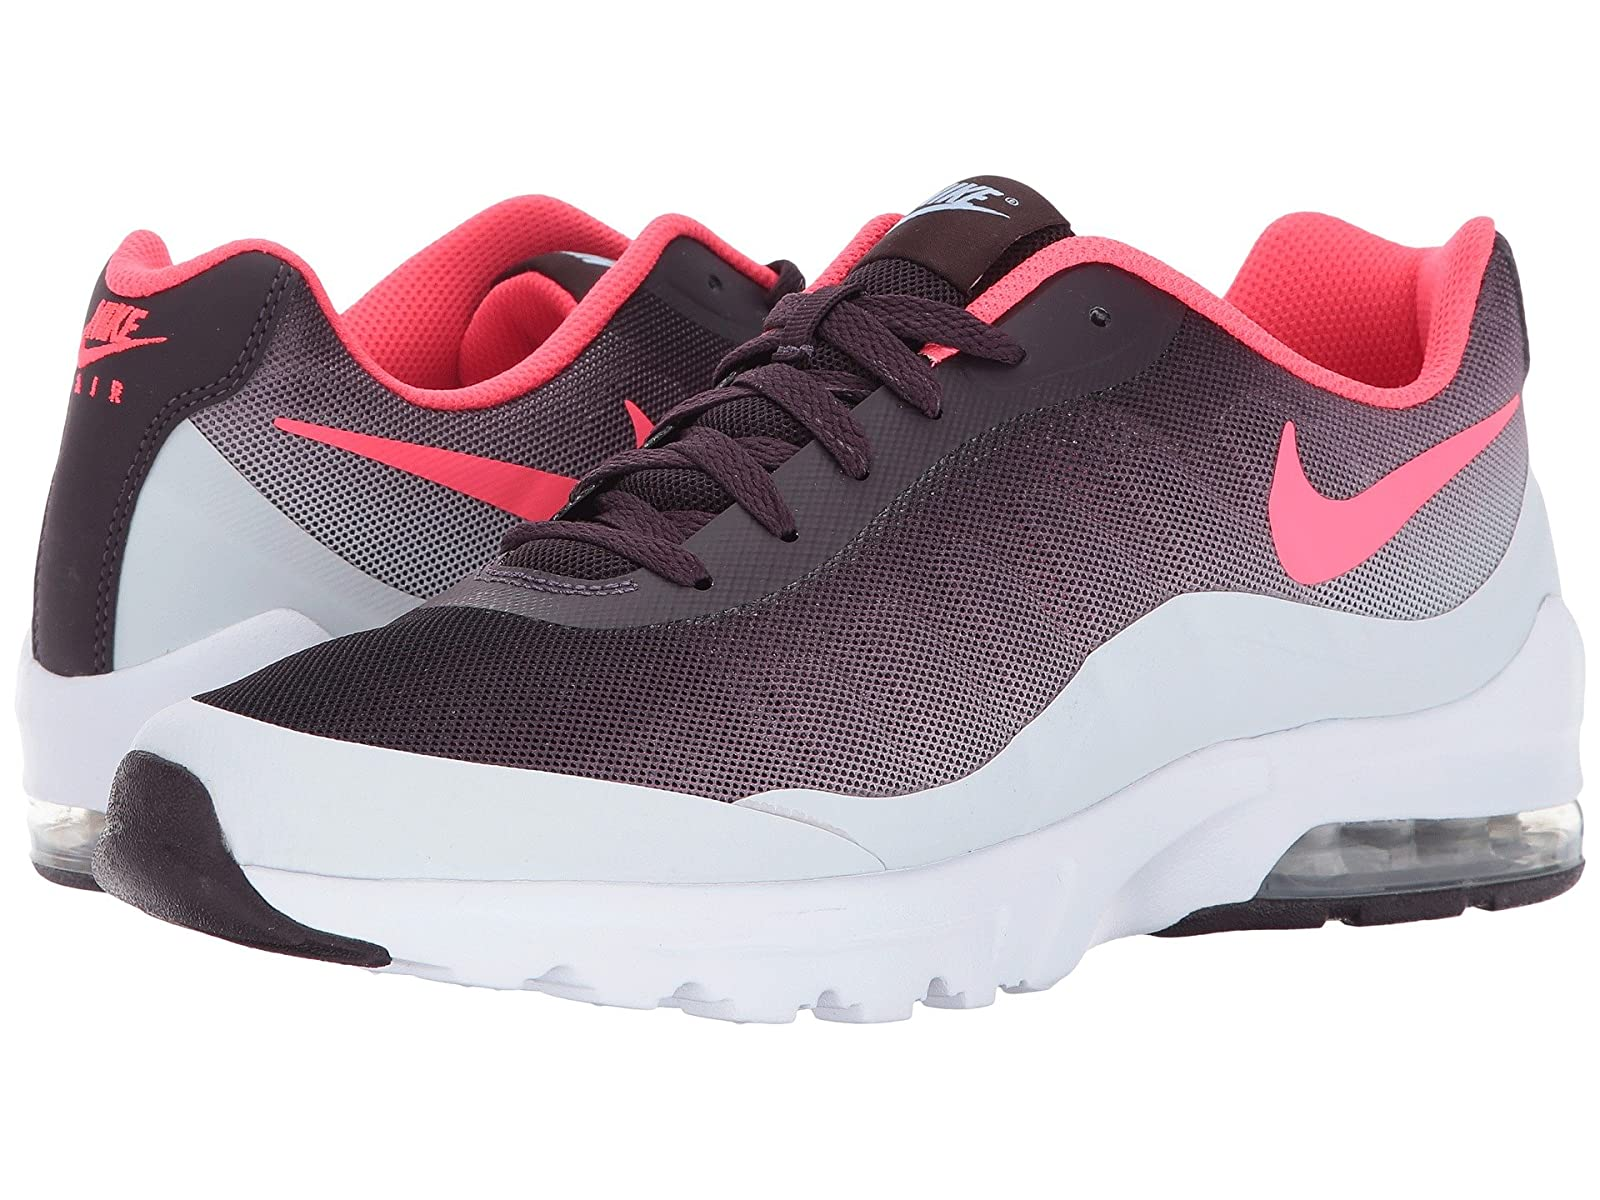 Nike Air Max InvigorCheap and distinctive eye-catching shoes